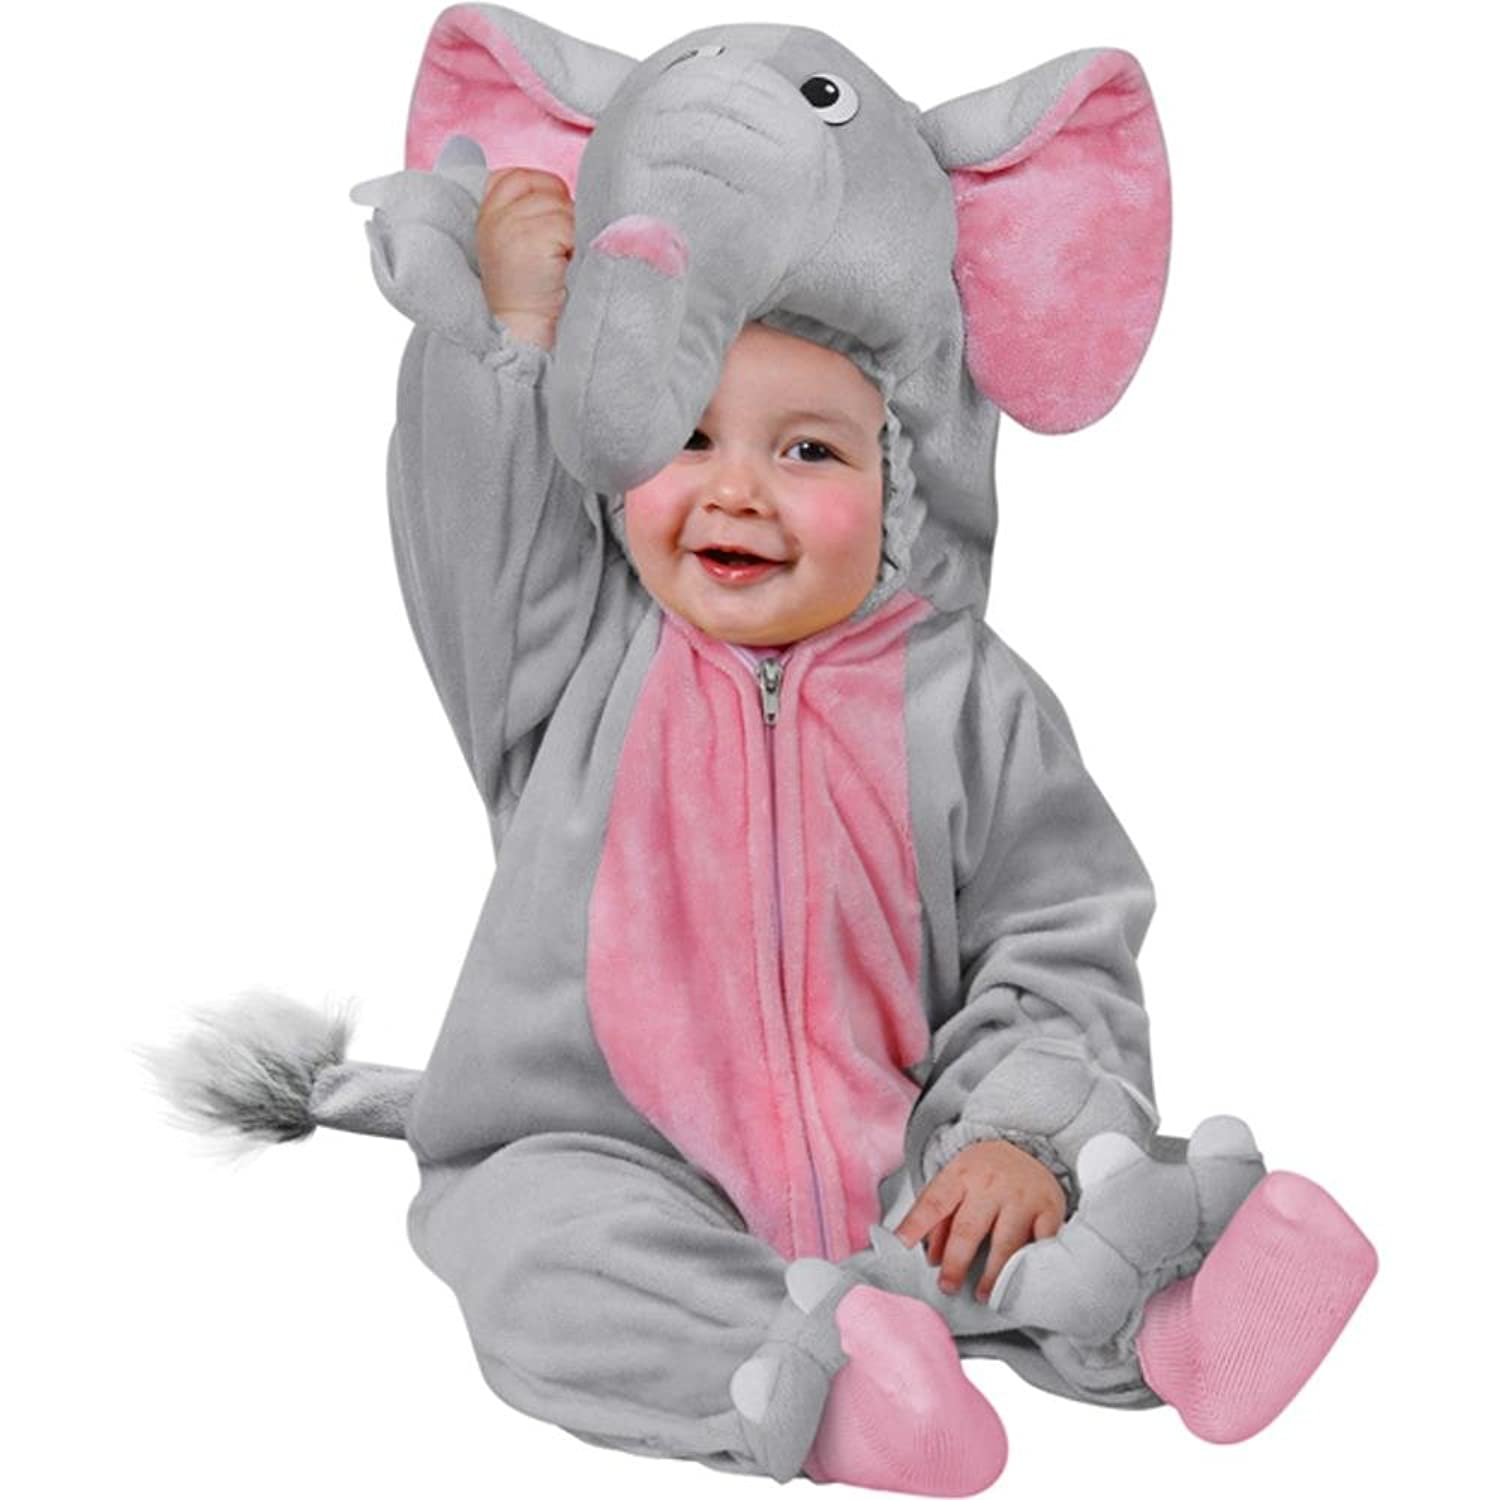 Princess Paradise Unisex-baby Adorable Elephant Costume